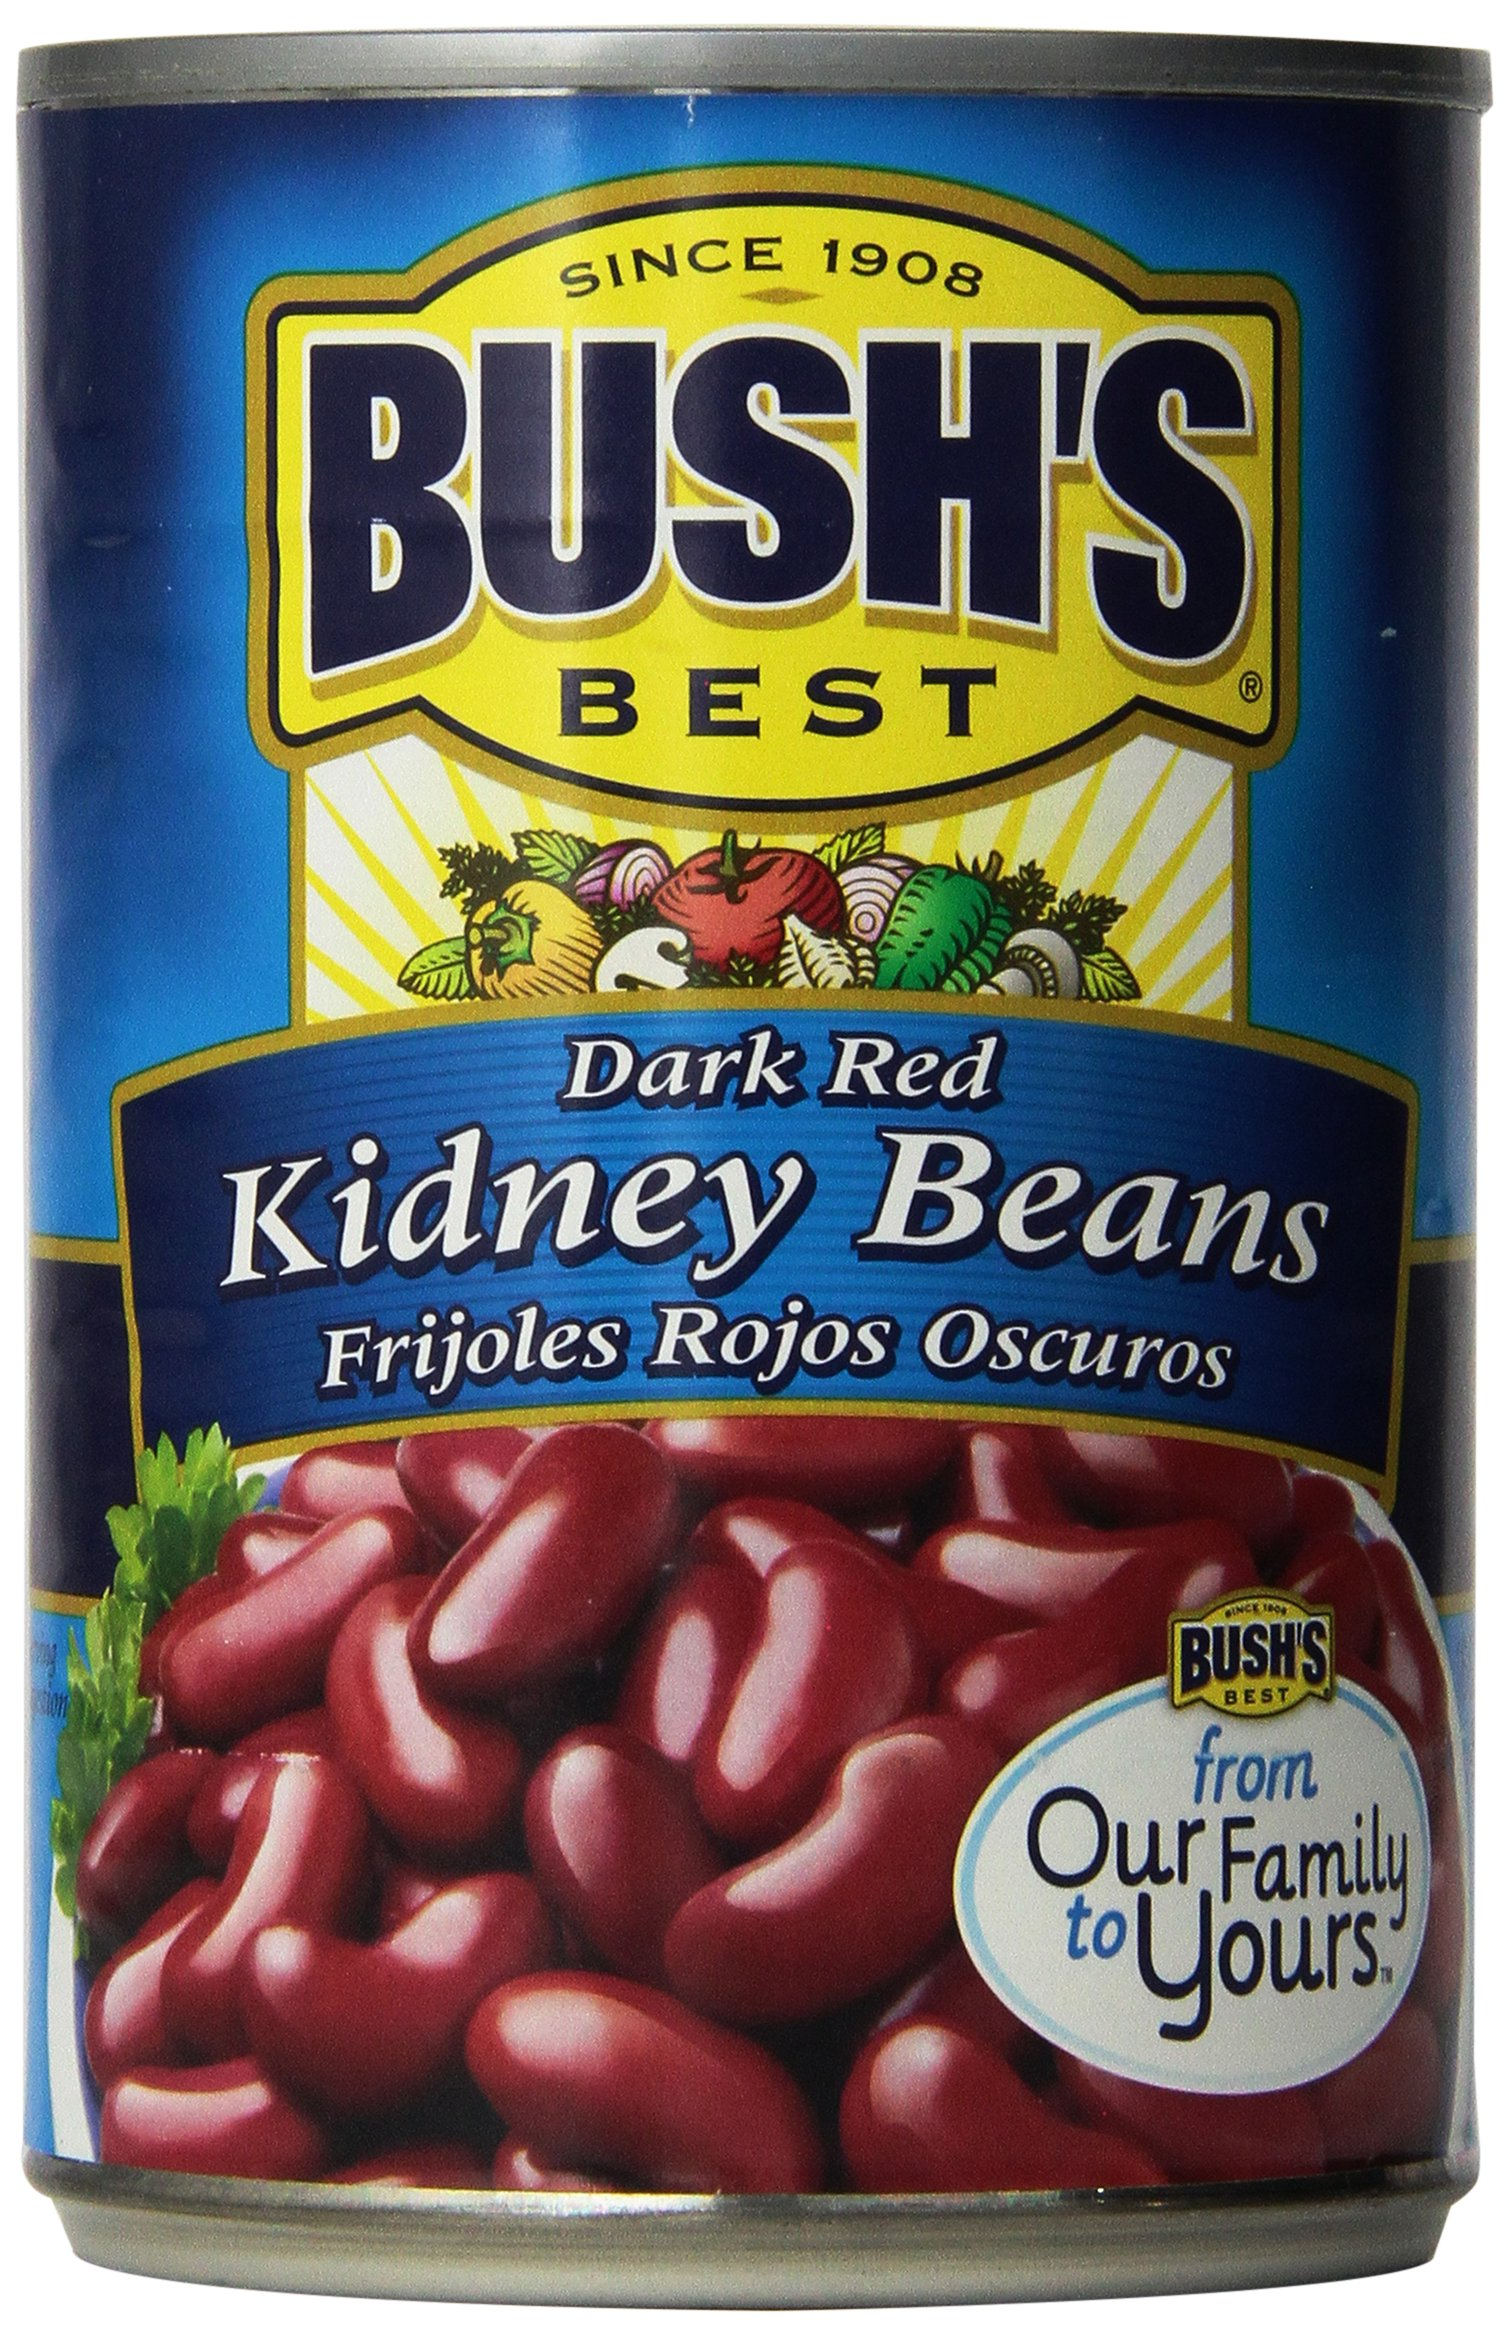 Bush's Best Dark Red Kidney Beans (3 pack)